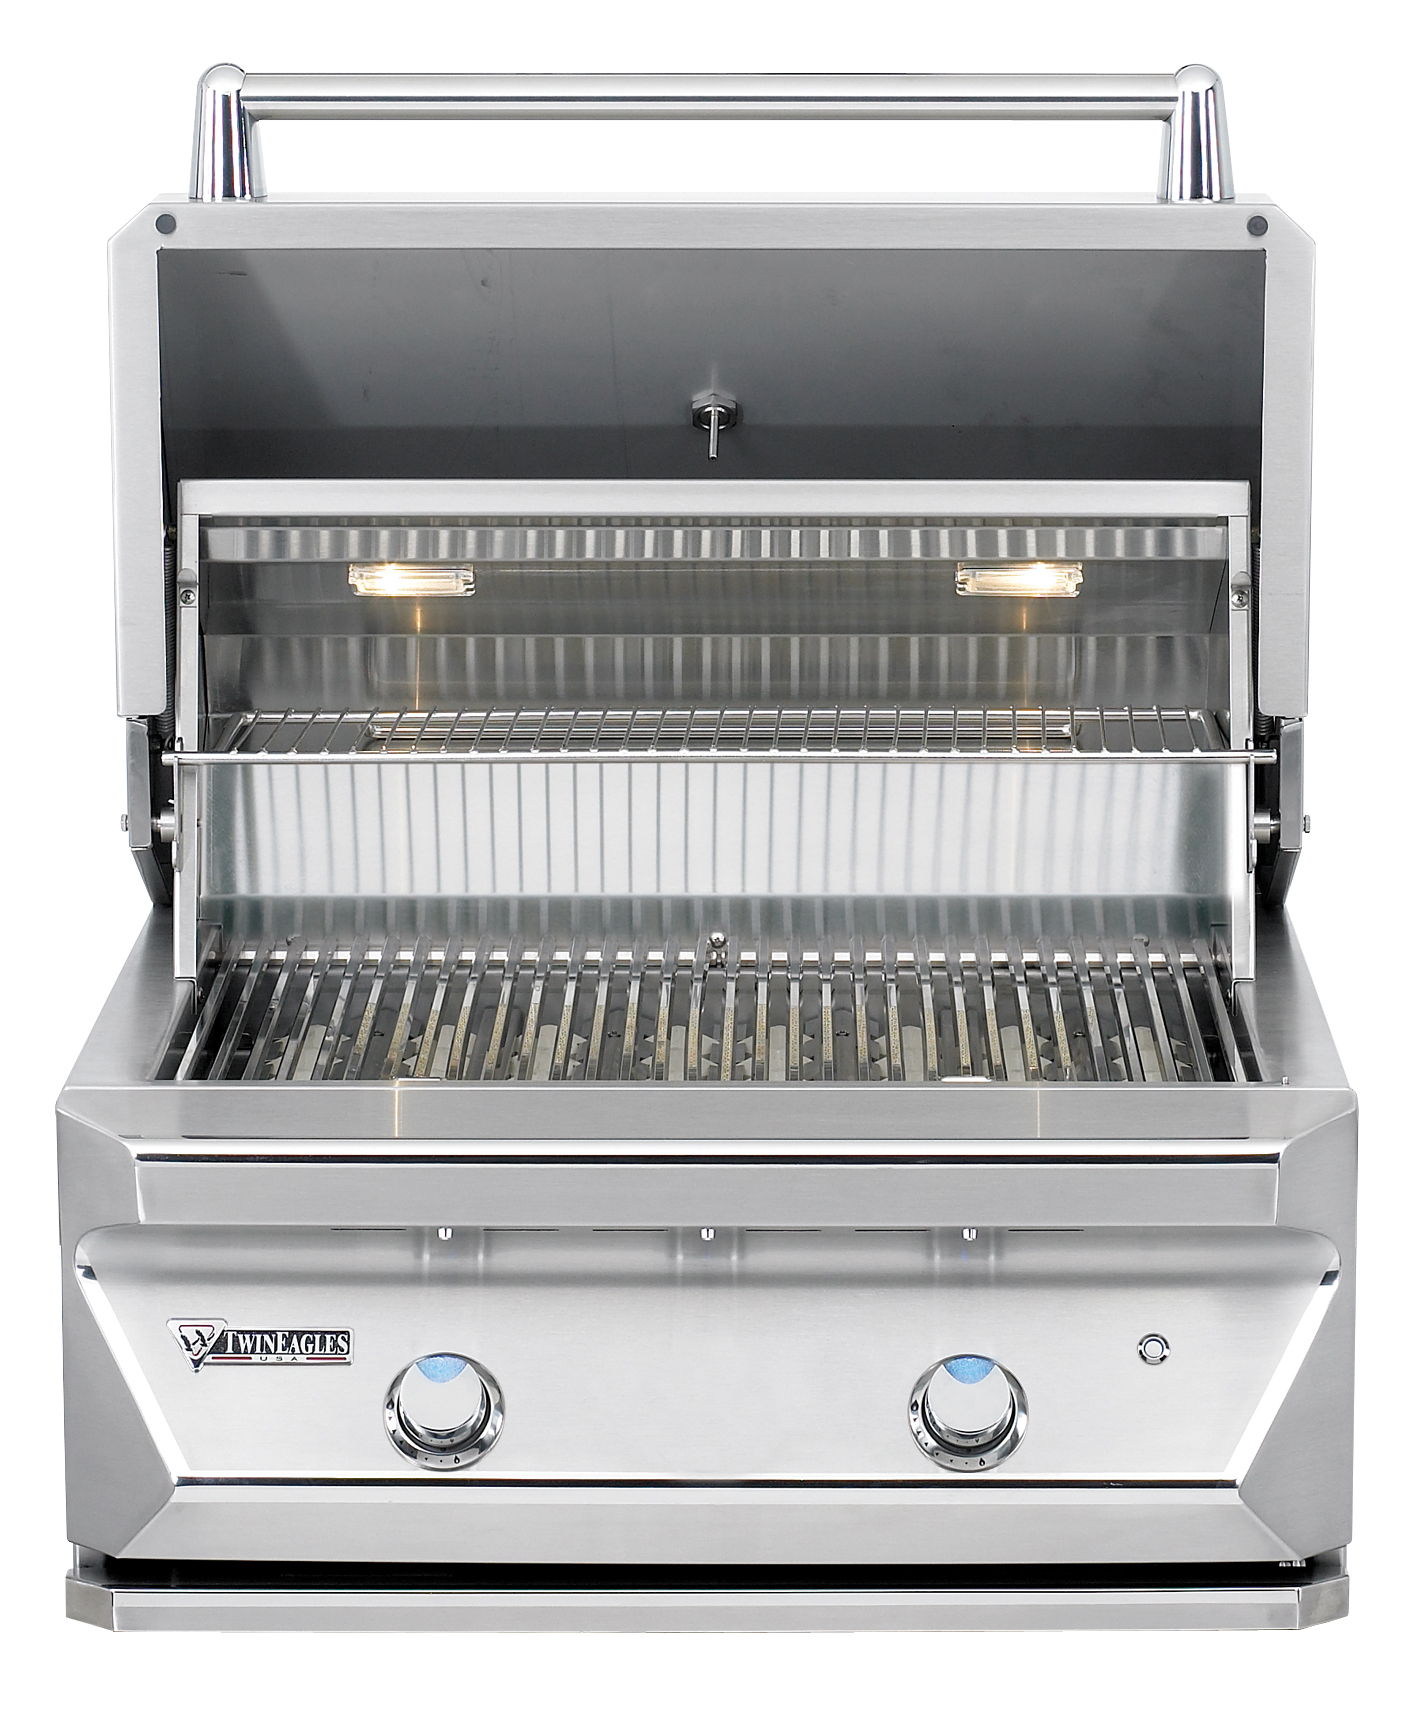 Twin Eagles TEBQ30 Built-in Grill